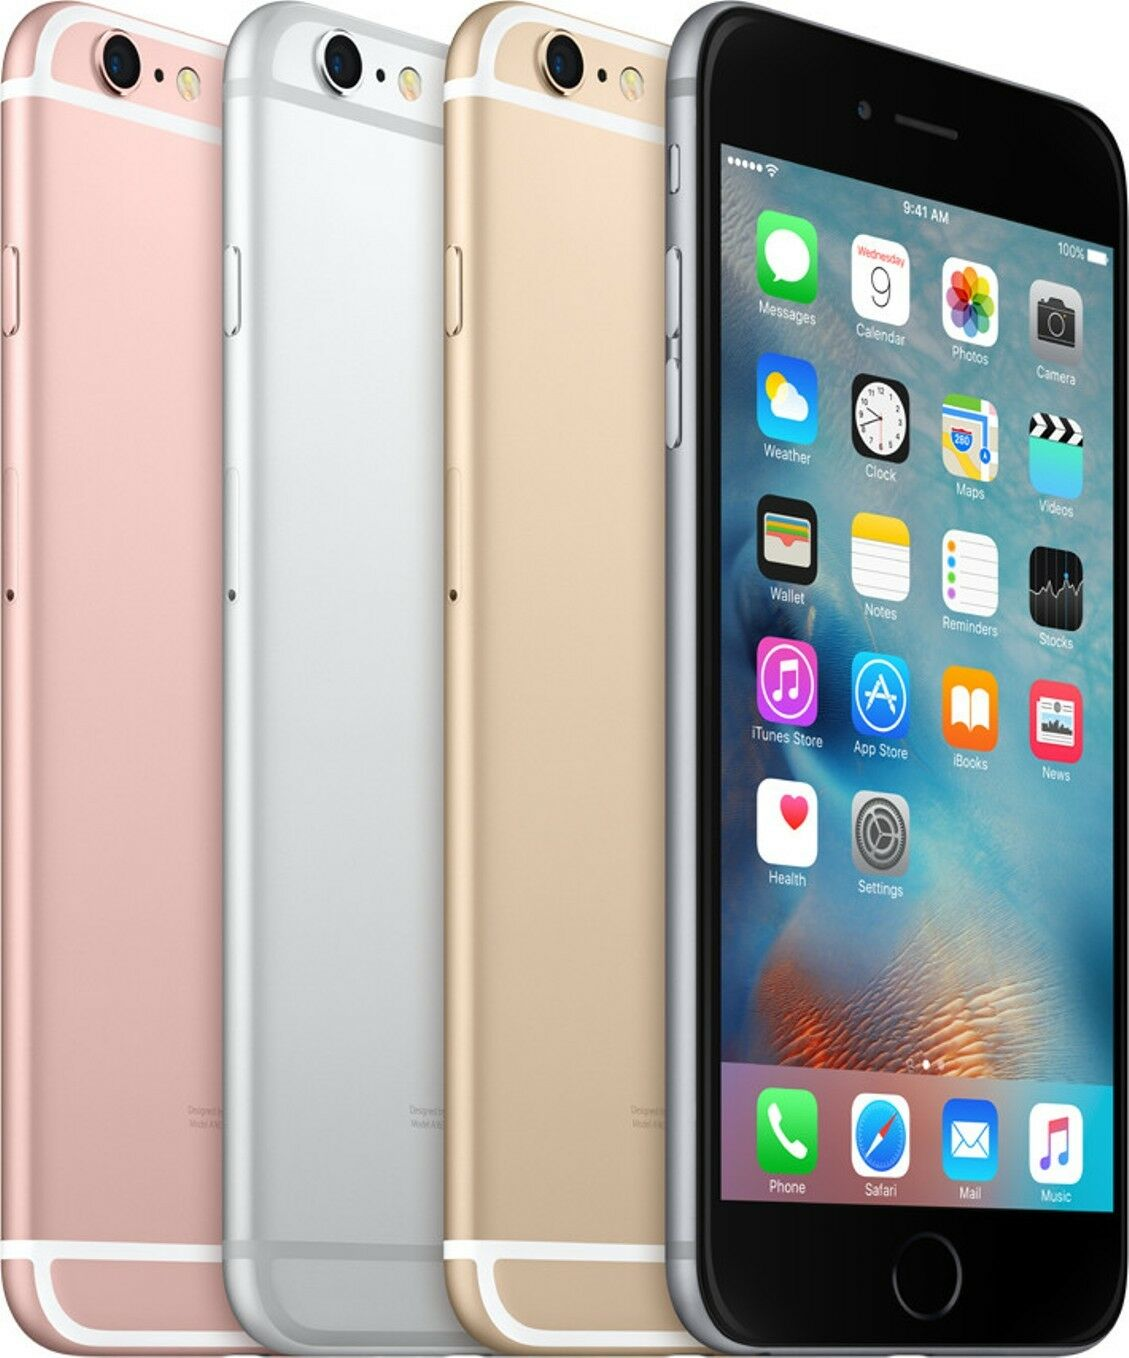 apple iphone 6s rose gold spacegrau silber 16gb 32gb 64gb 128gb wie neu einmalig eur 349 97. Black Bedroom Furniture Sets. Home Design Ideas